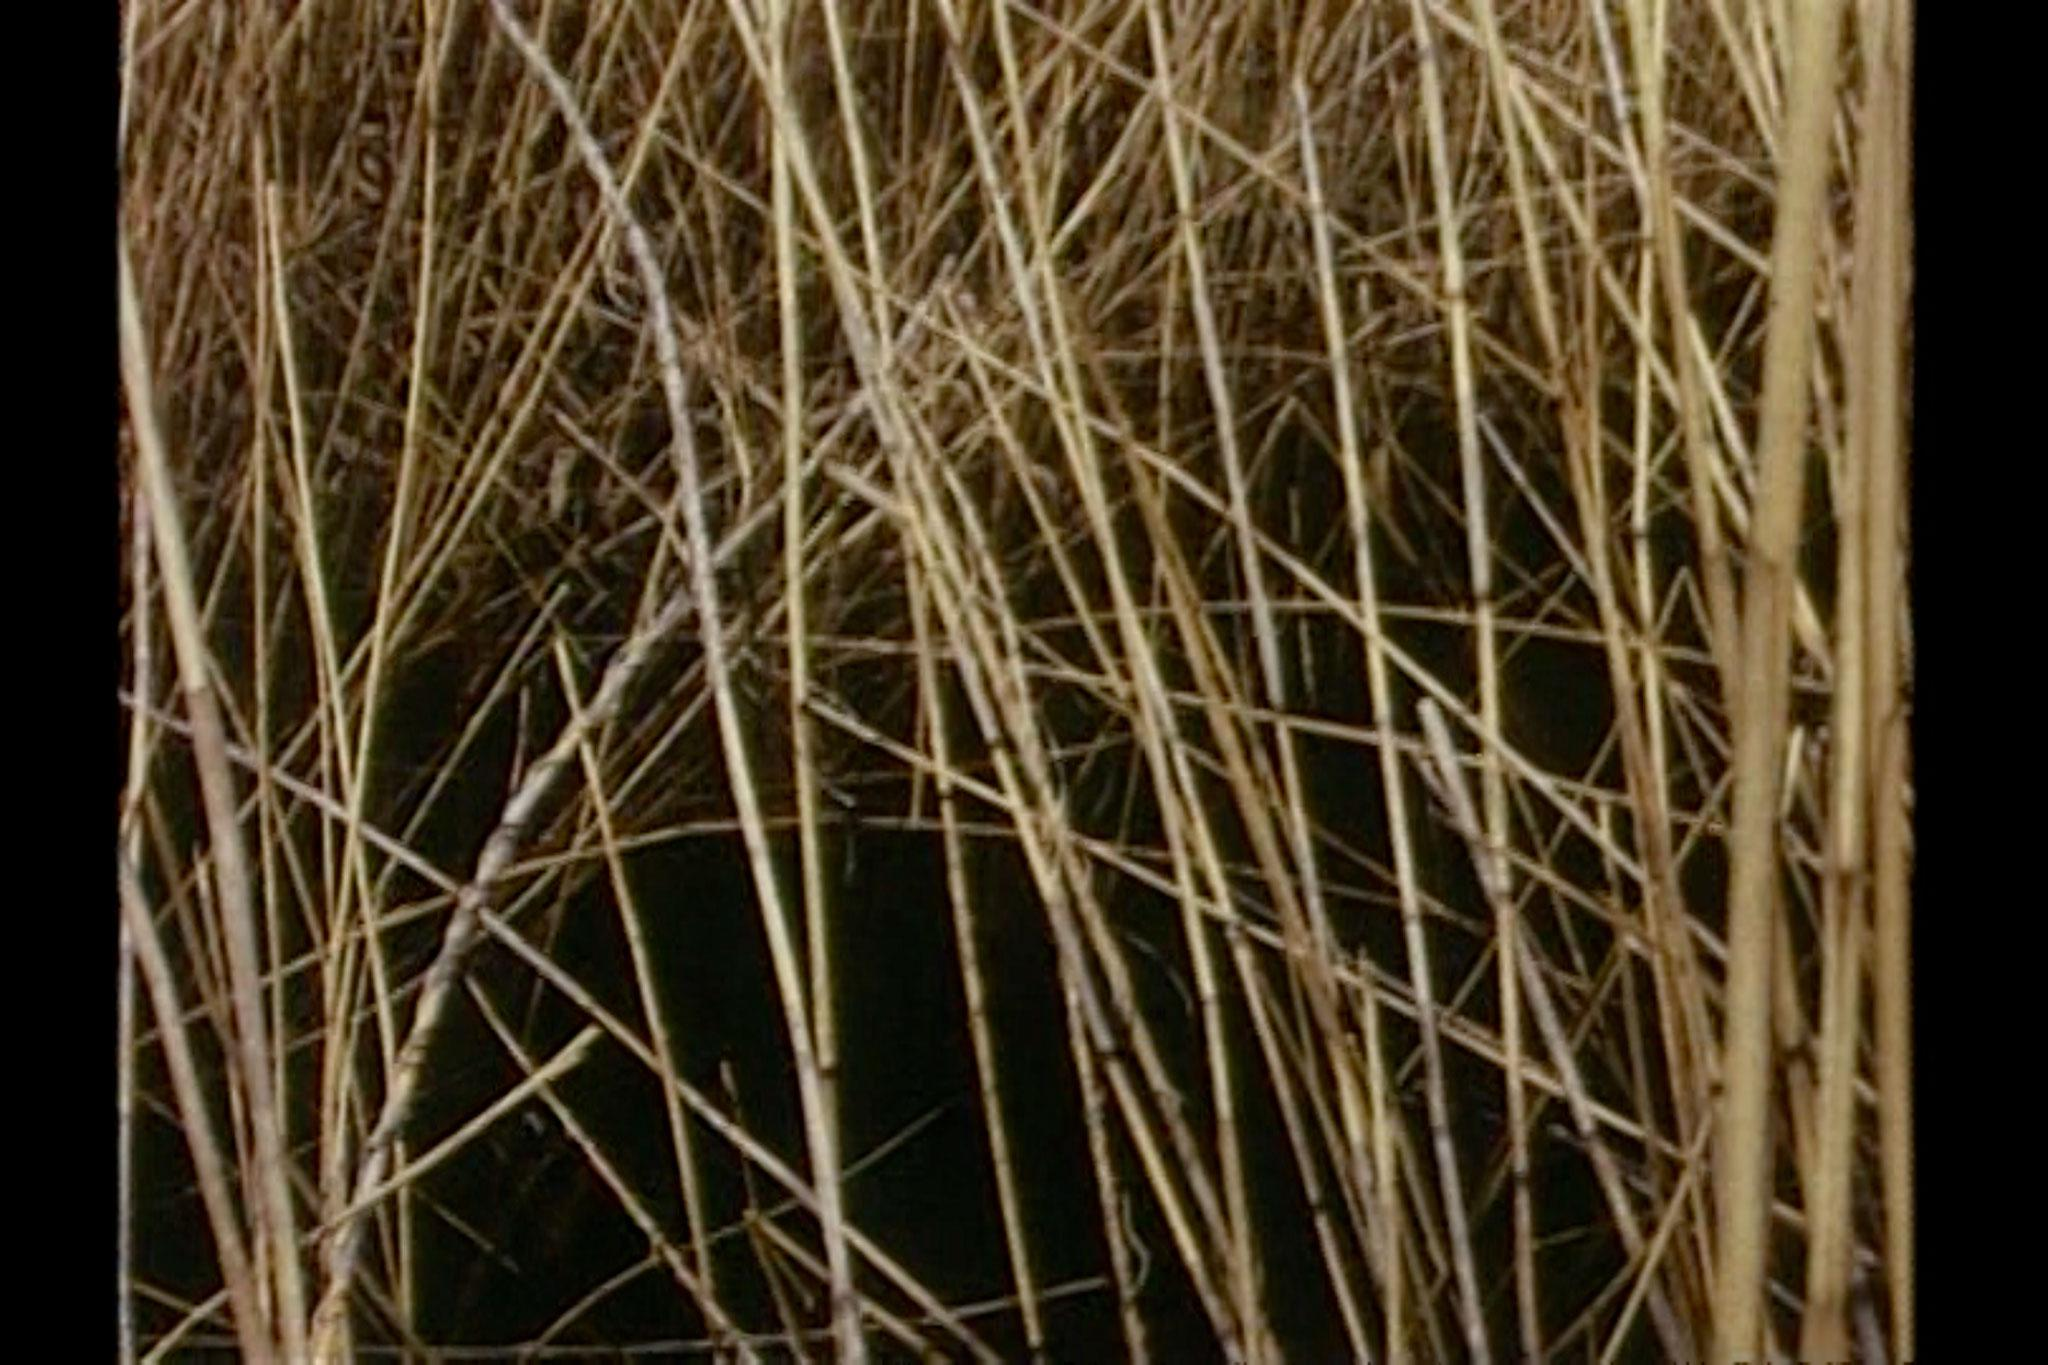 Chaotic image of many criss-crossing reeds with a dark shadowy background.